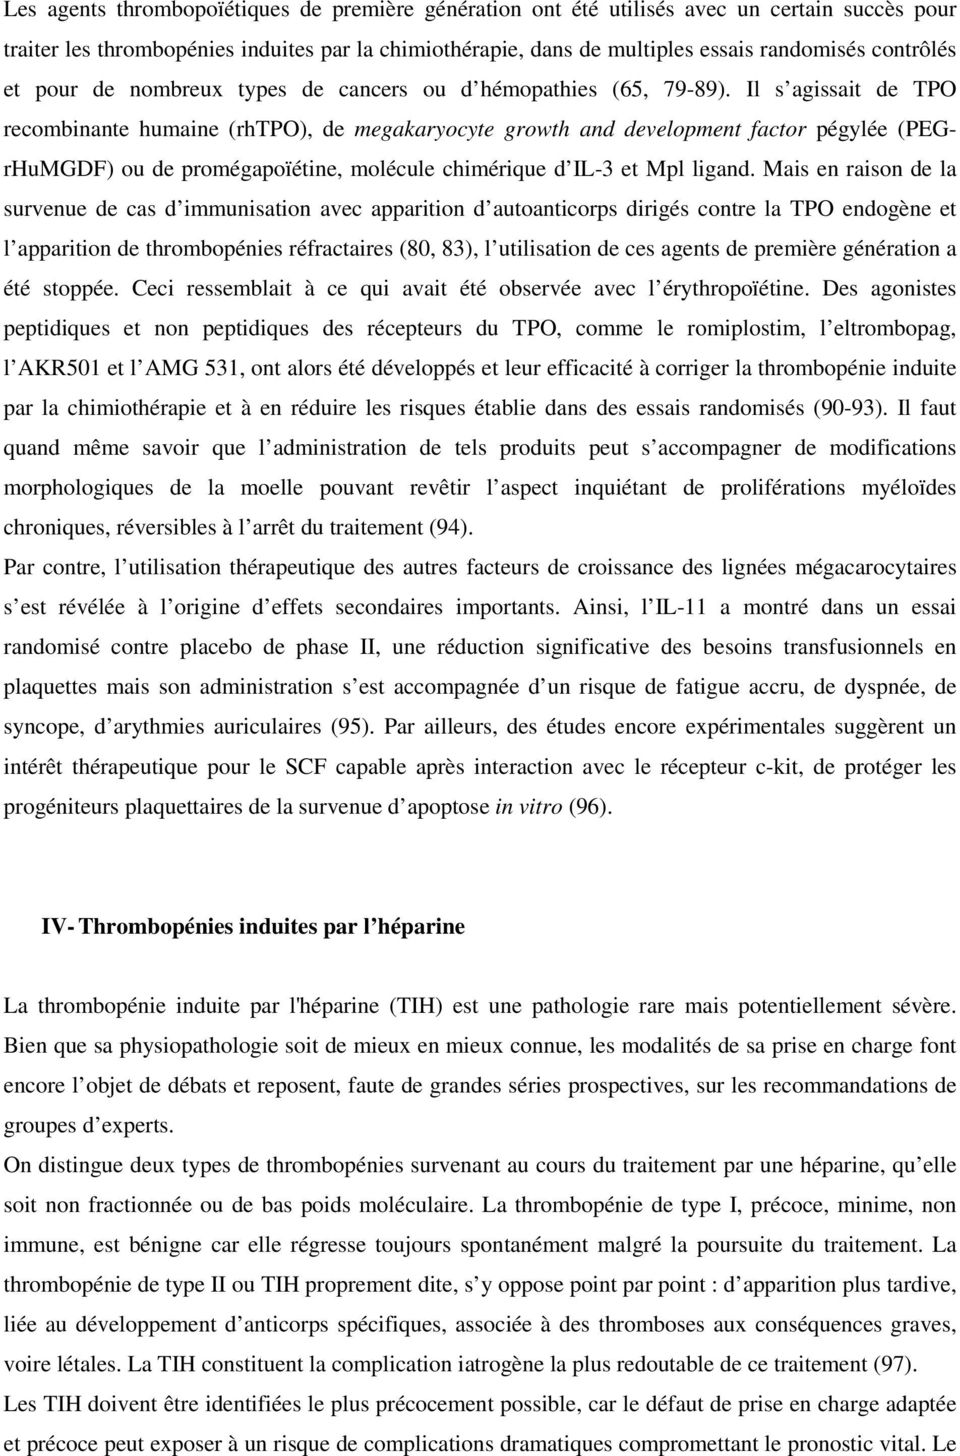 Il s agissait de TPO recombinante humaine (rhtpo), de megakaryocyte growth and development factor pégylée (PEGrHuMGDF) ou de promégapoïétine, molécule chimérique d IL-3 et Mpl ligand.